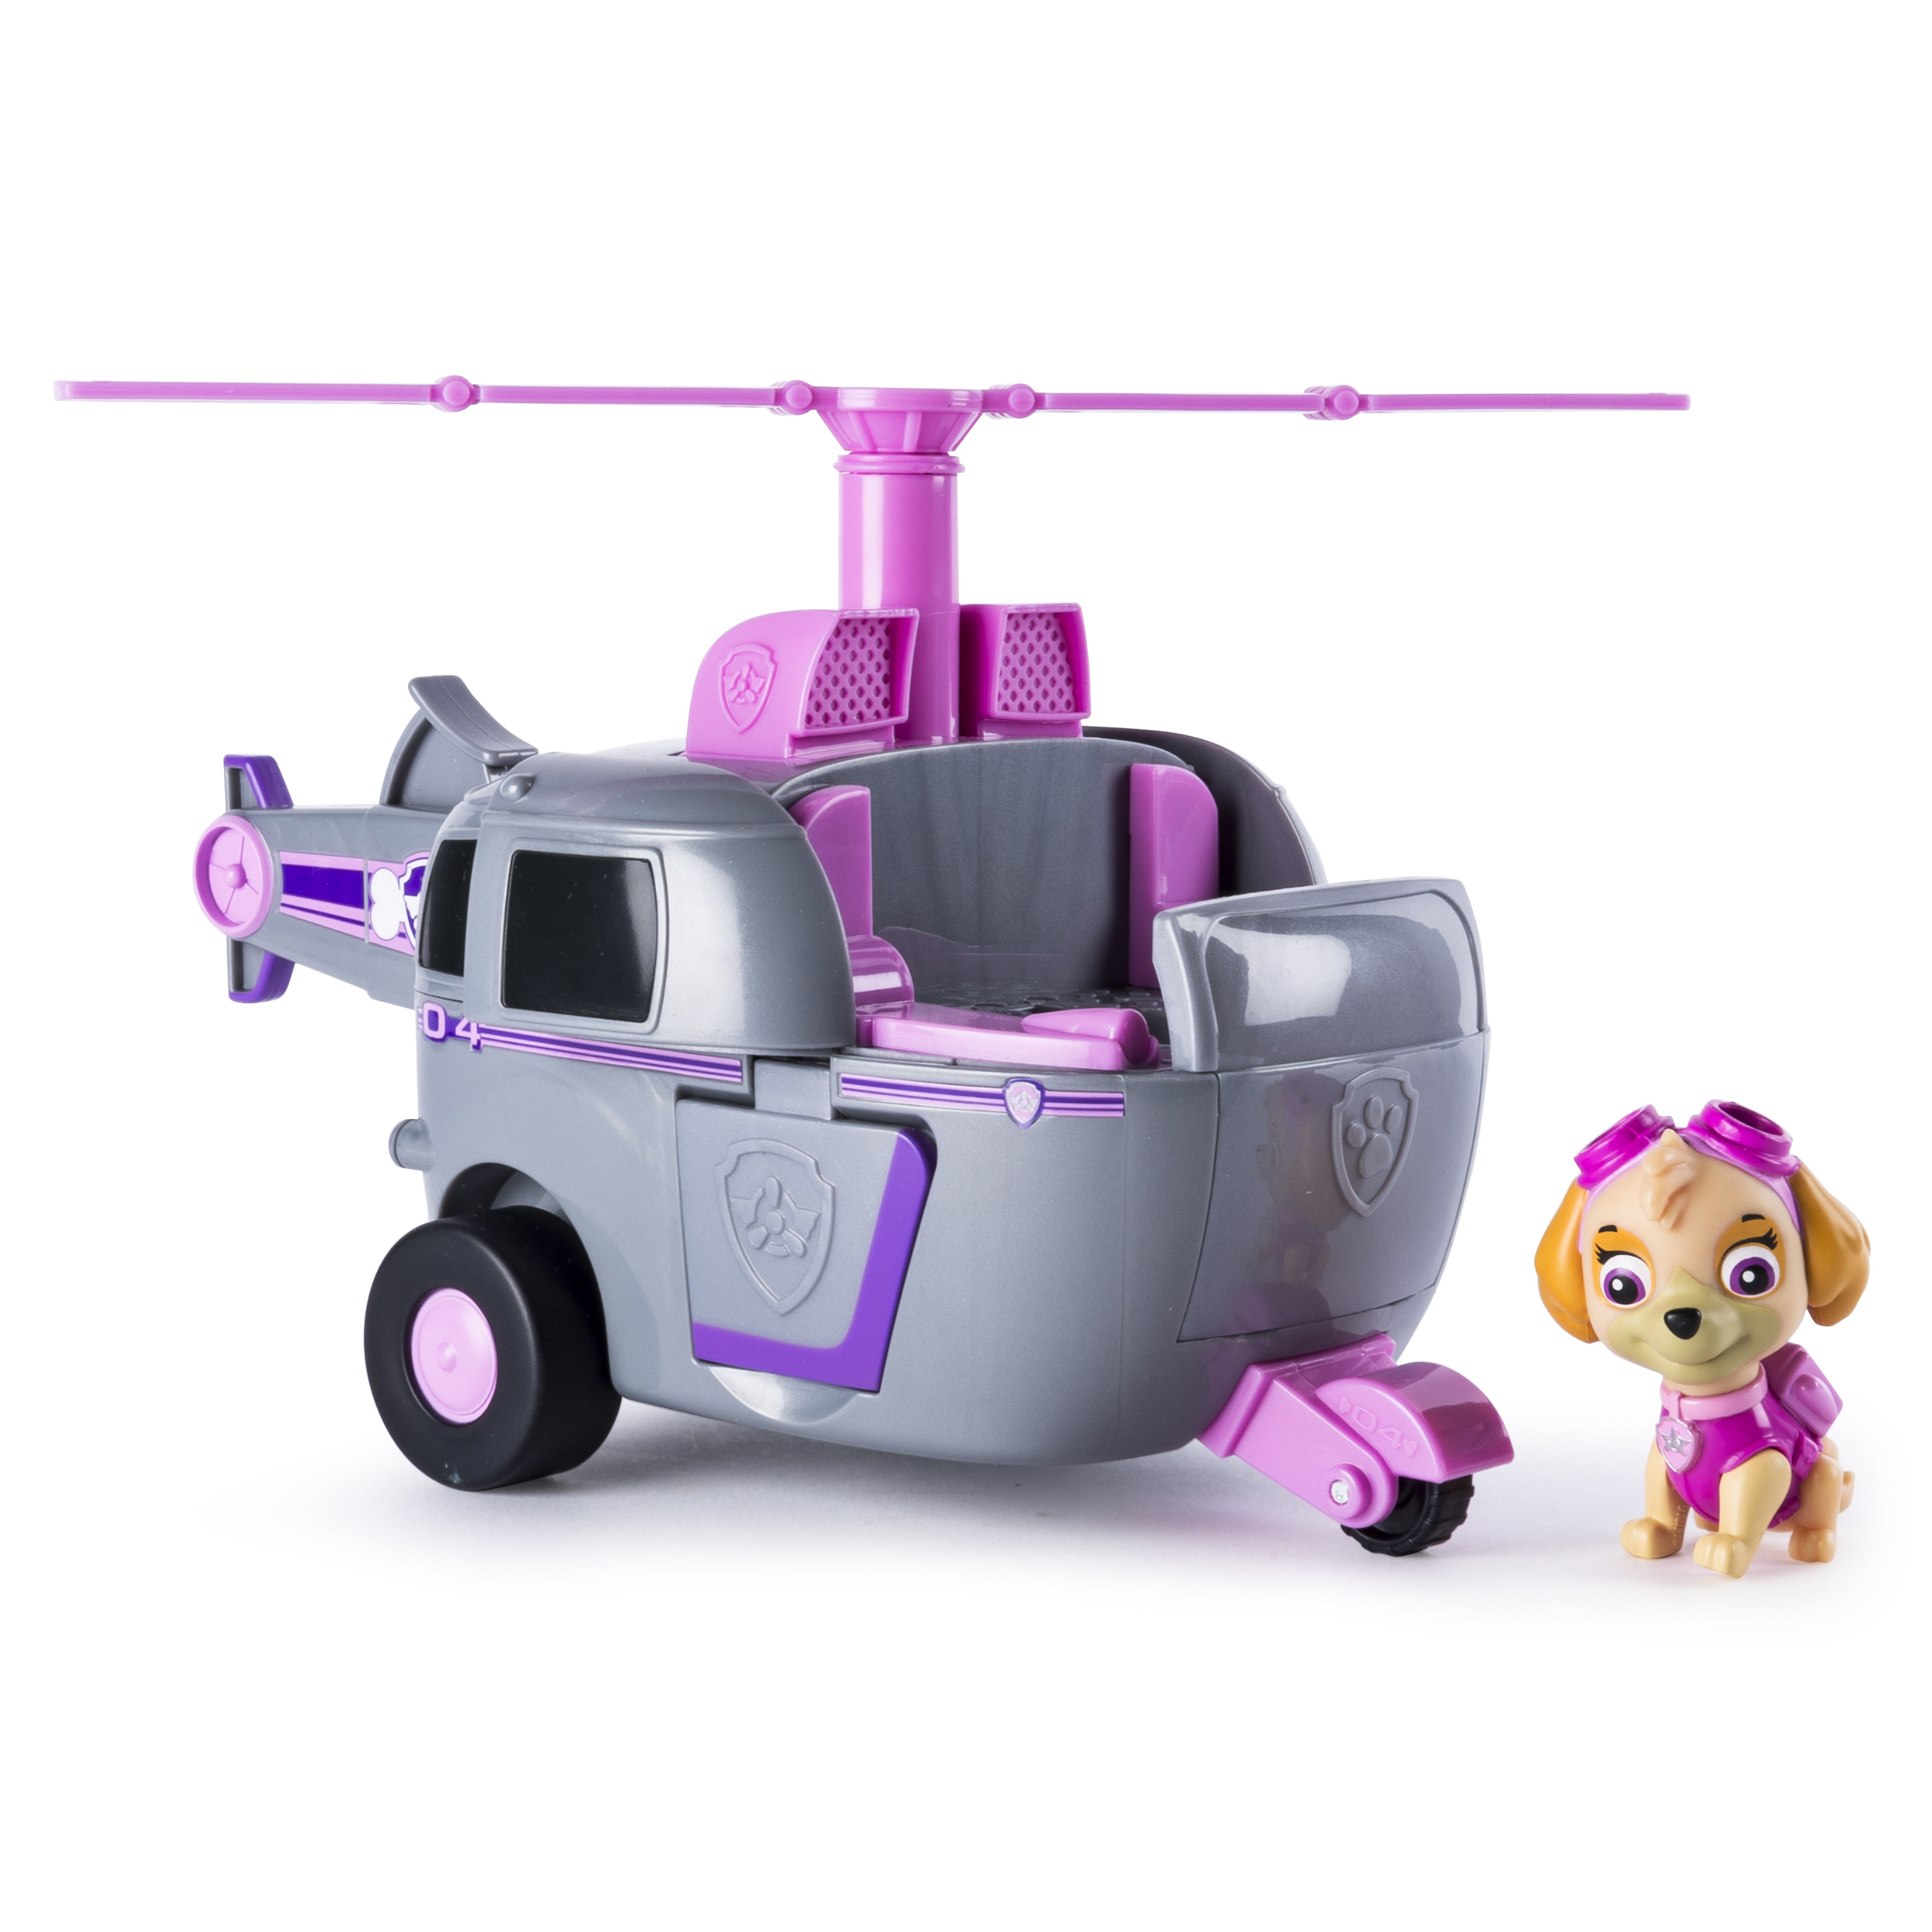 <p>Paw Patrol - Skye's Deluxe Helicopter</p>